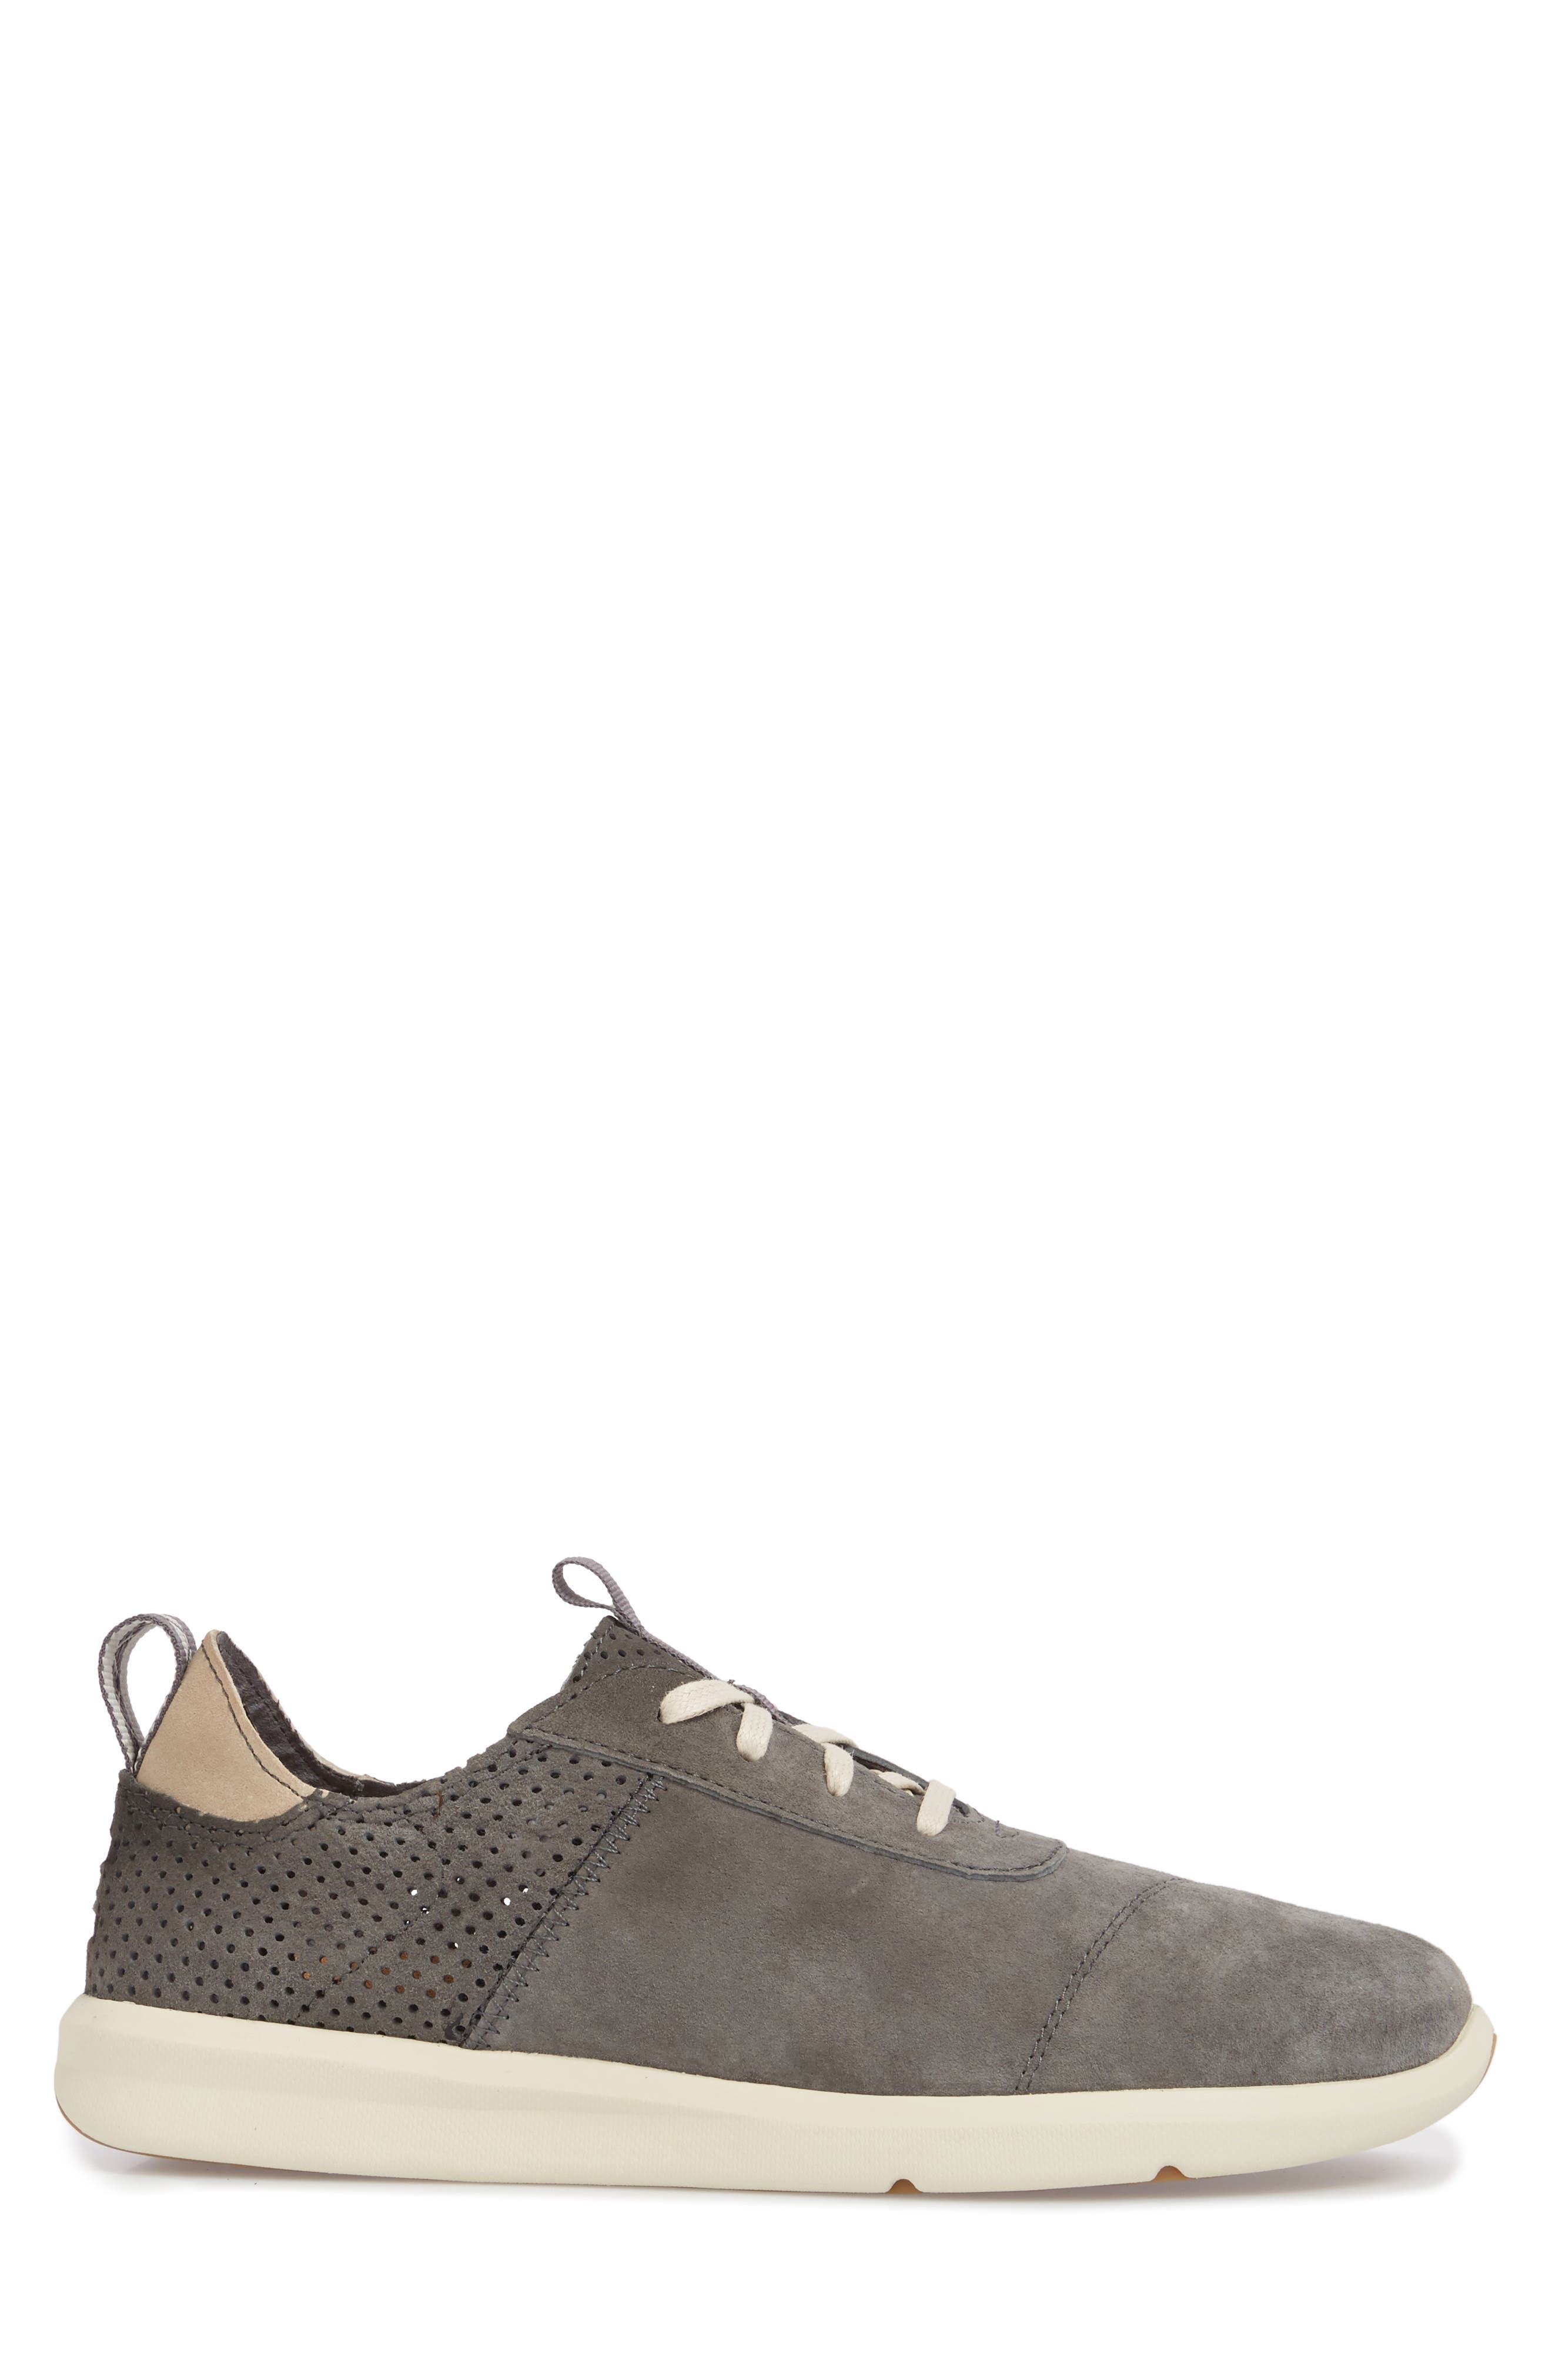 Cabrillo Perforated Low Top Sneaker,                             Alternate thumbnail 3, color,                             021